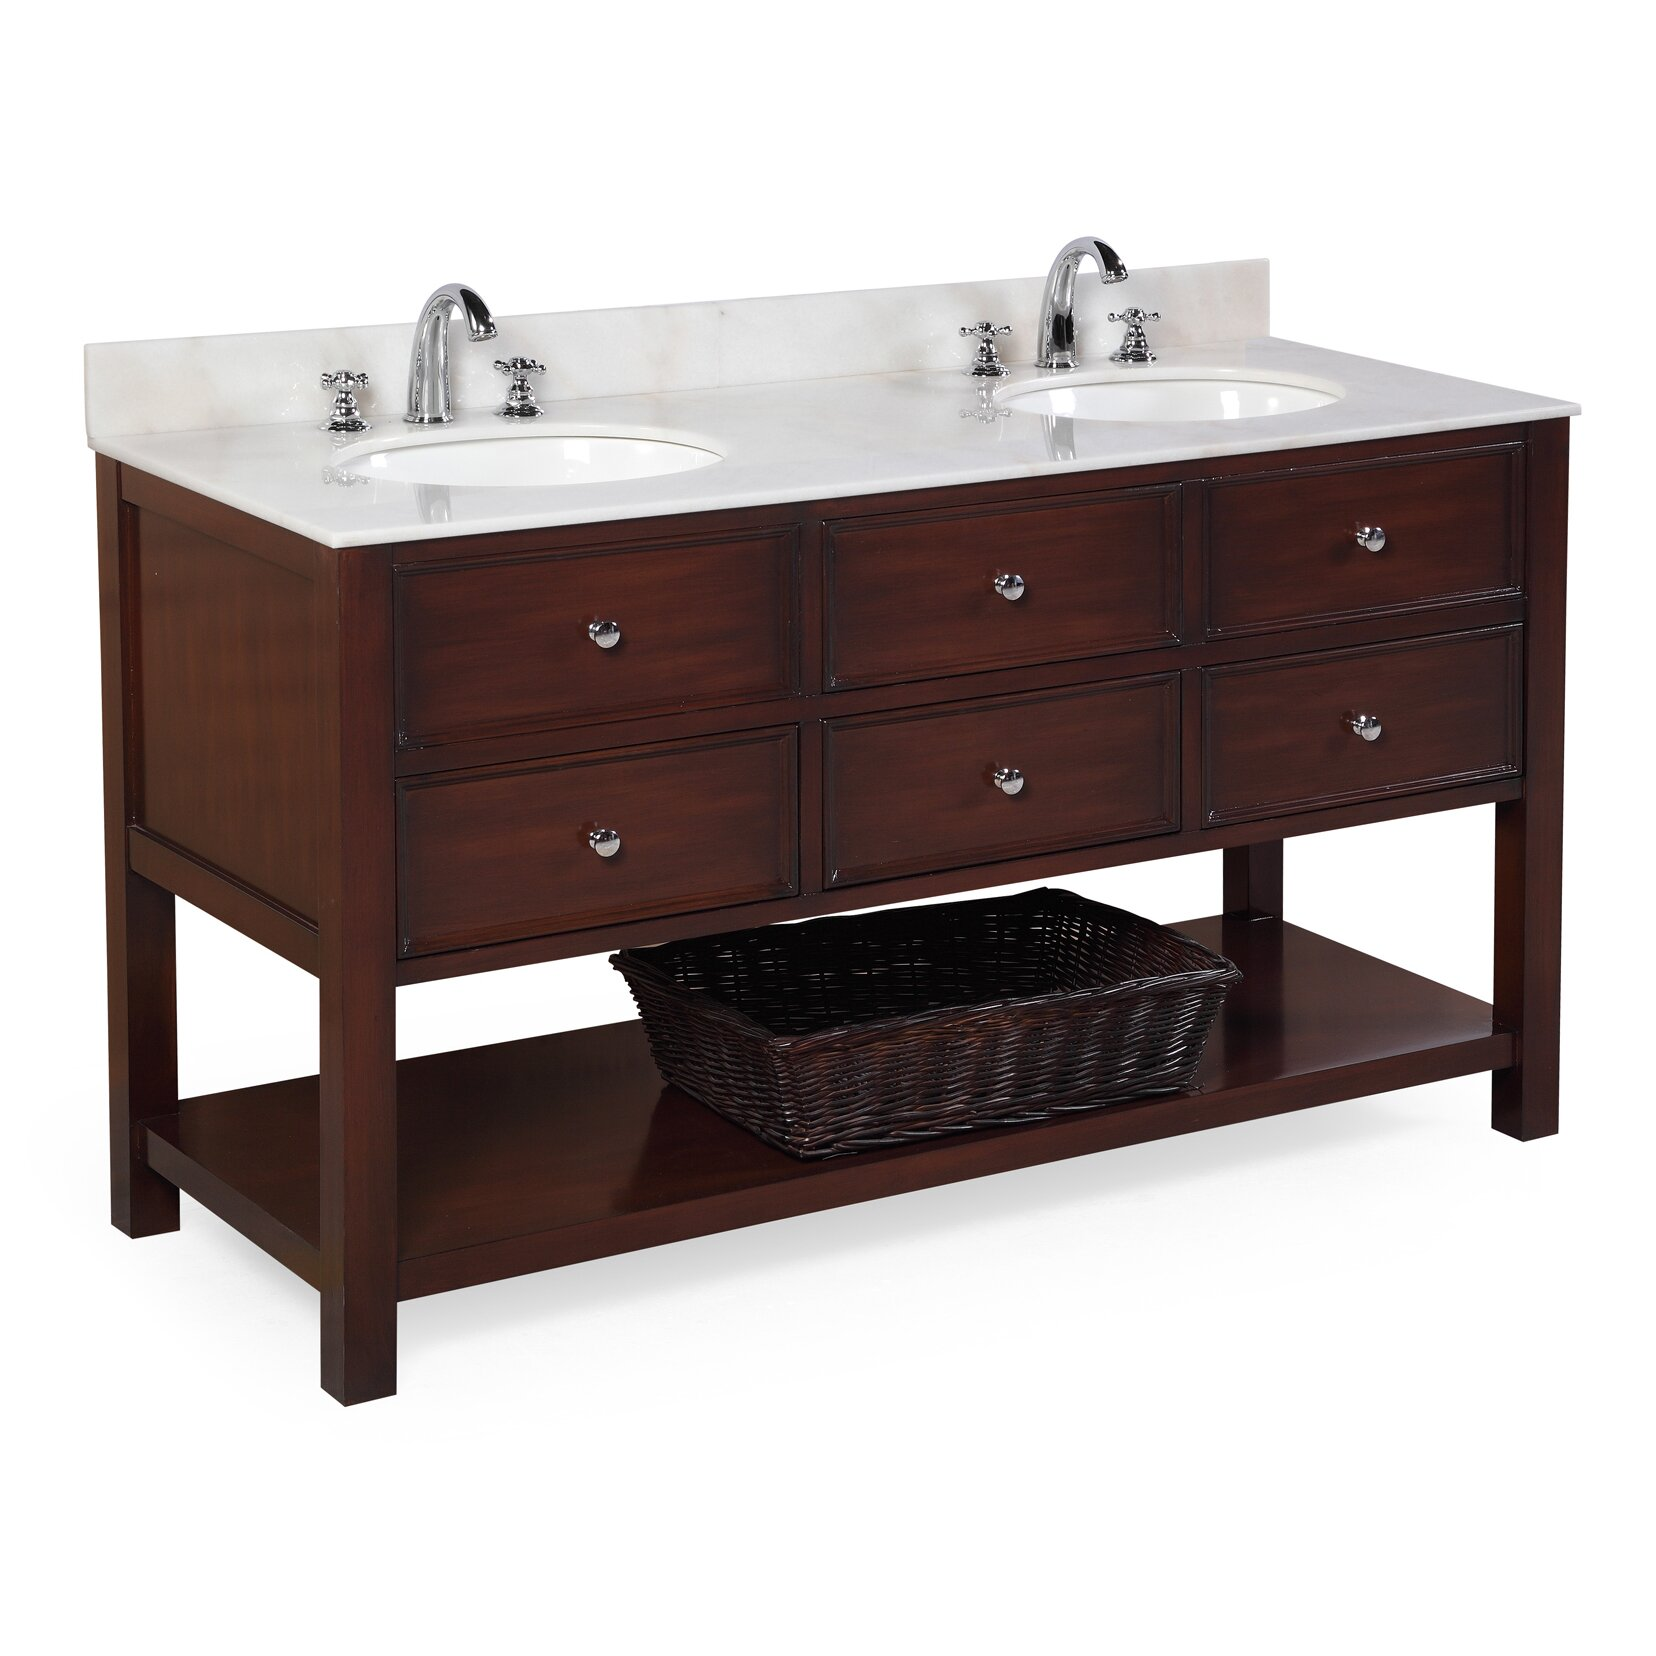 Kbc new yorker 60 double bathroom vanity set reviews for Bathroom picture sets